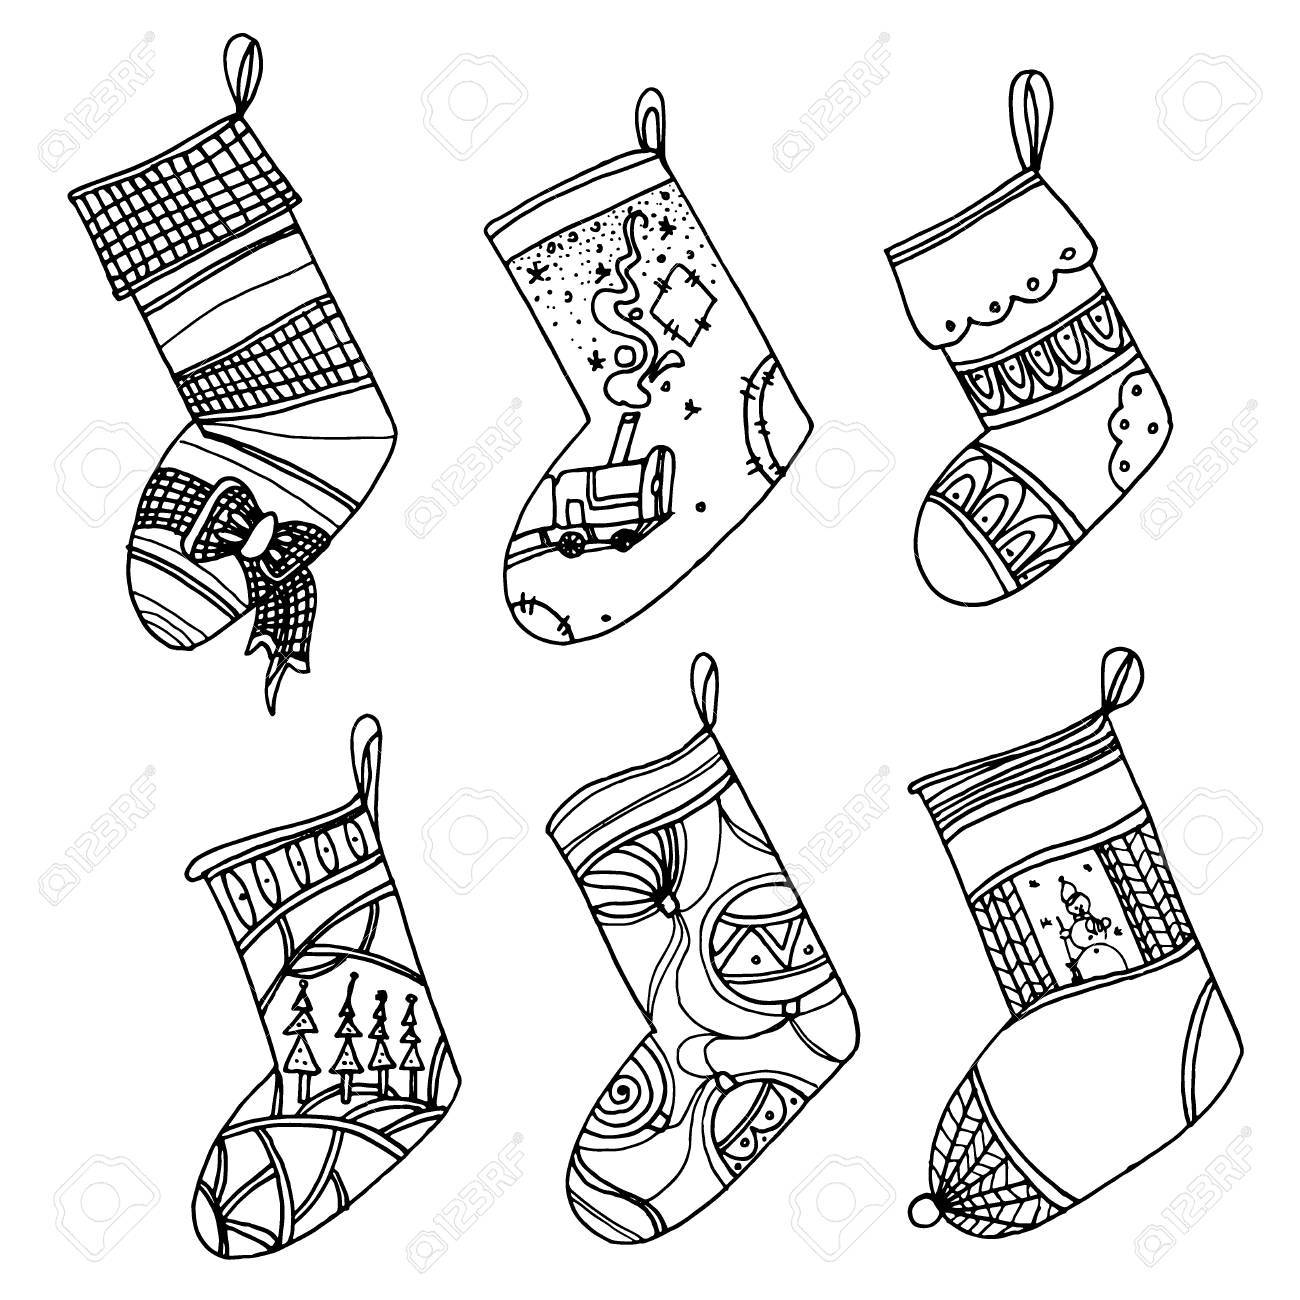 Drawings Of Christmas Stockings.Set Of Christmas Stockings Collection Of Vector Stylized Winter